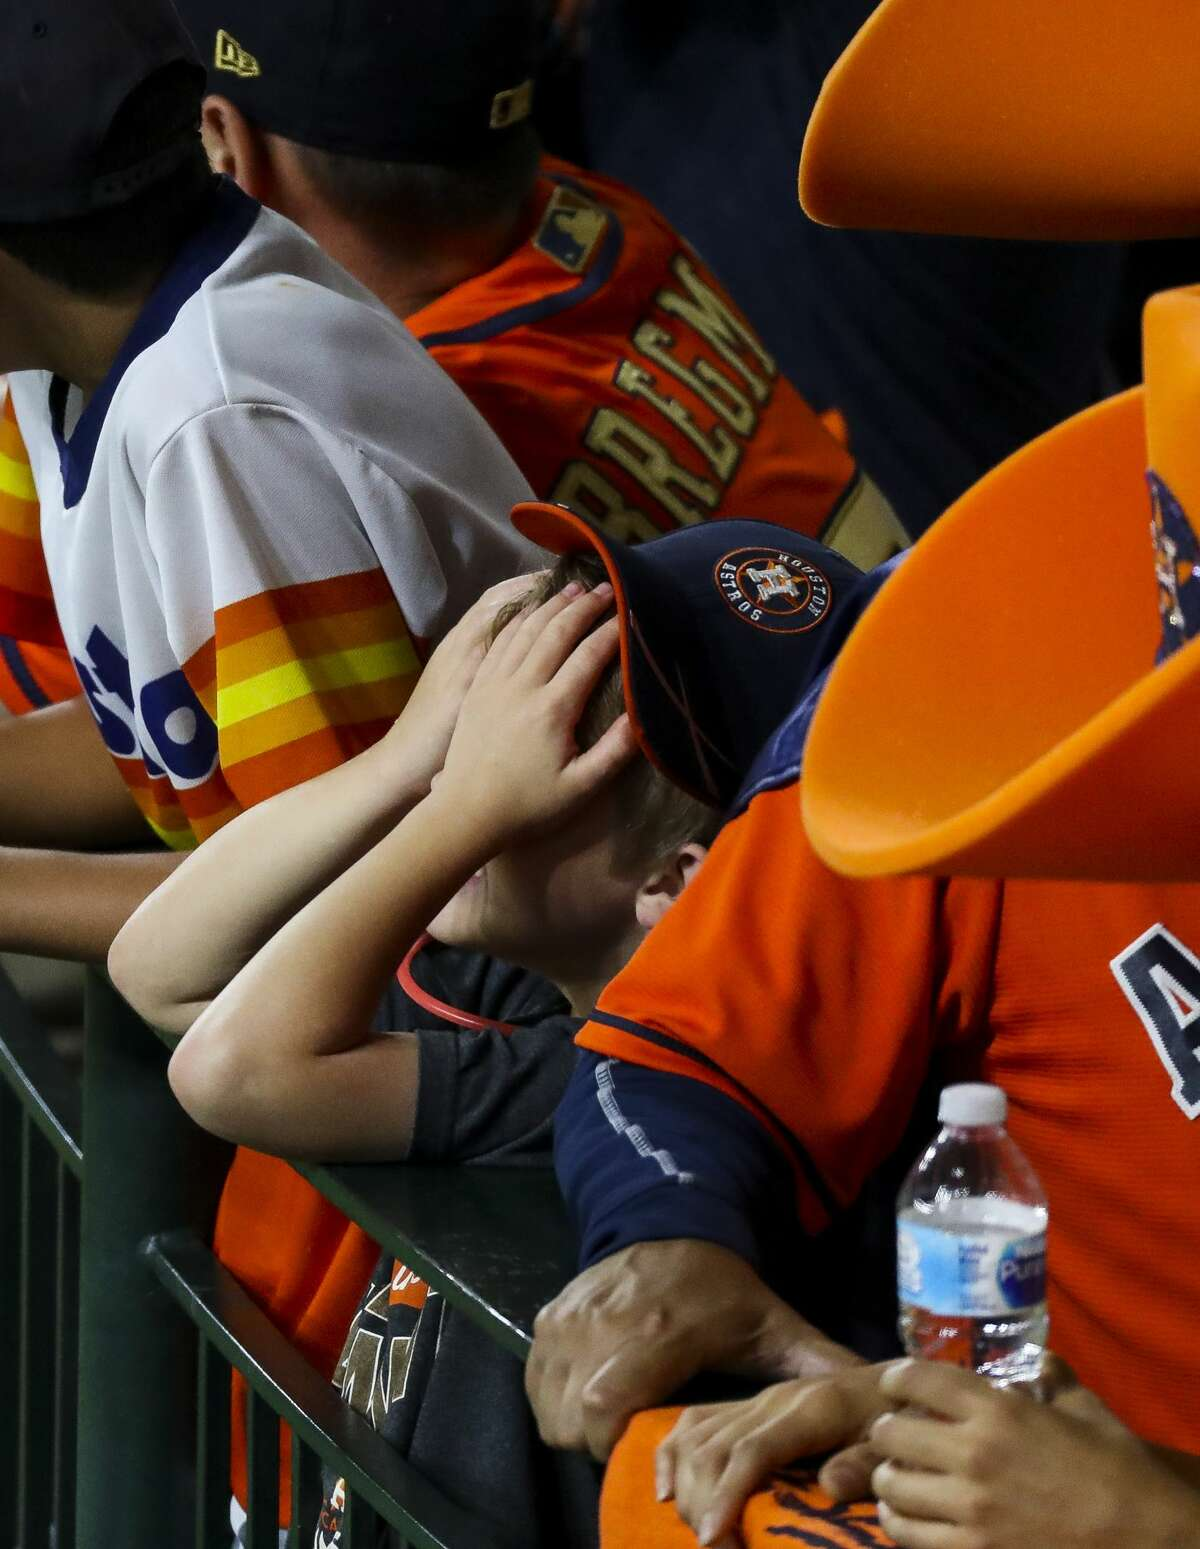 A young Astros fan reacts during the seventh inning of Game 5 of the American League Championship Series at Minute Maid Park on Thursday, Oct. 18, 2018, in Houston.